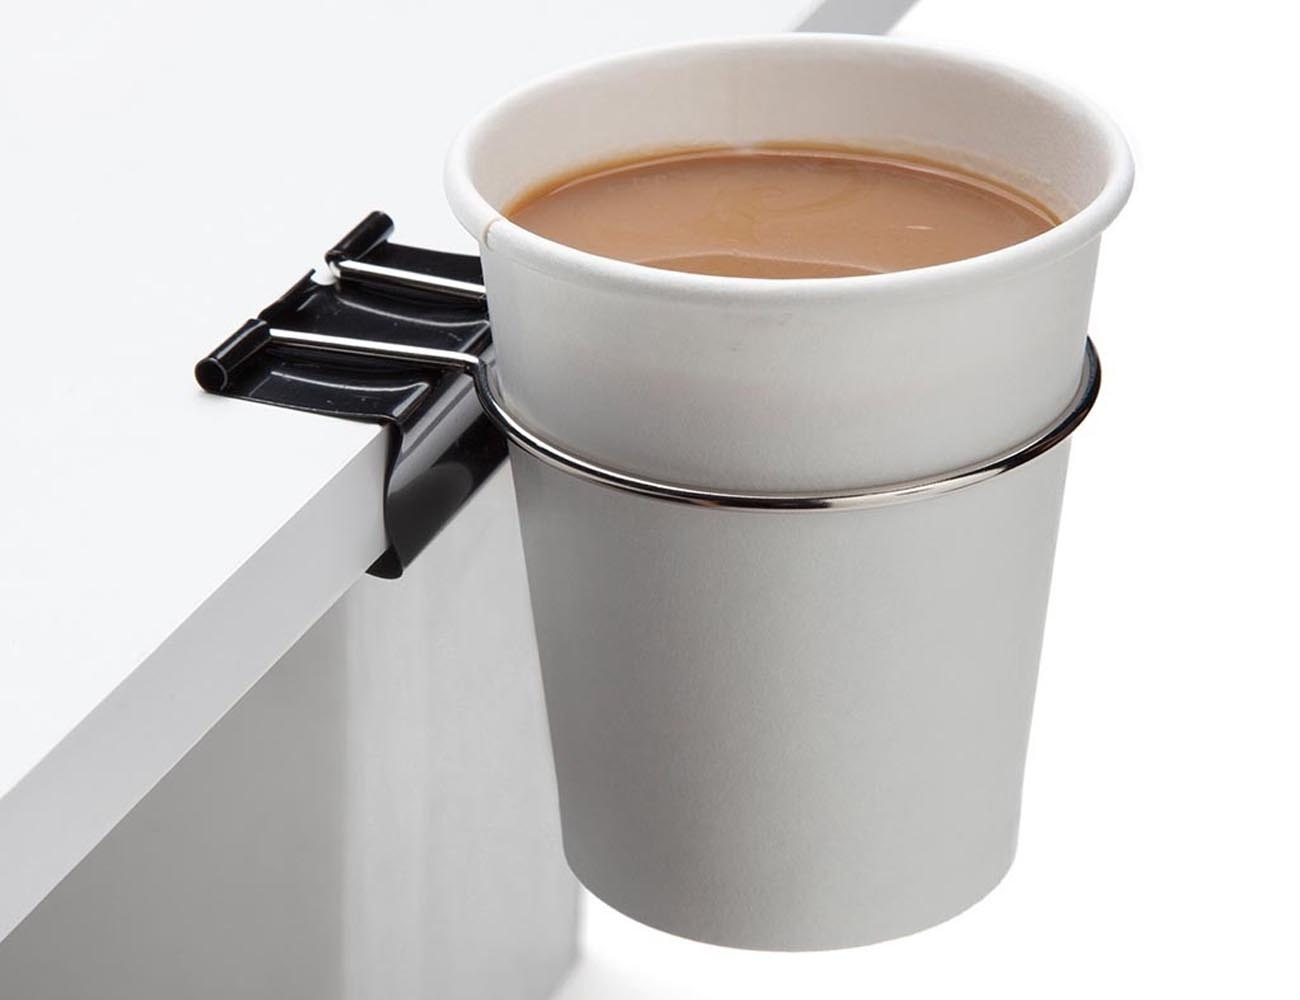 Cup Clip Multifunctional Clip